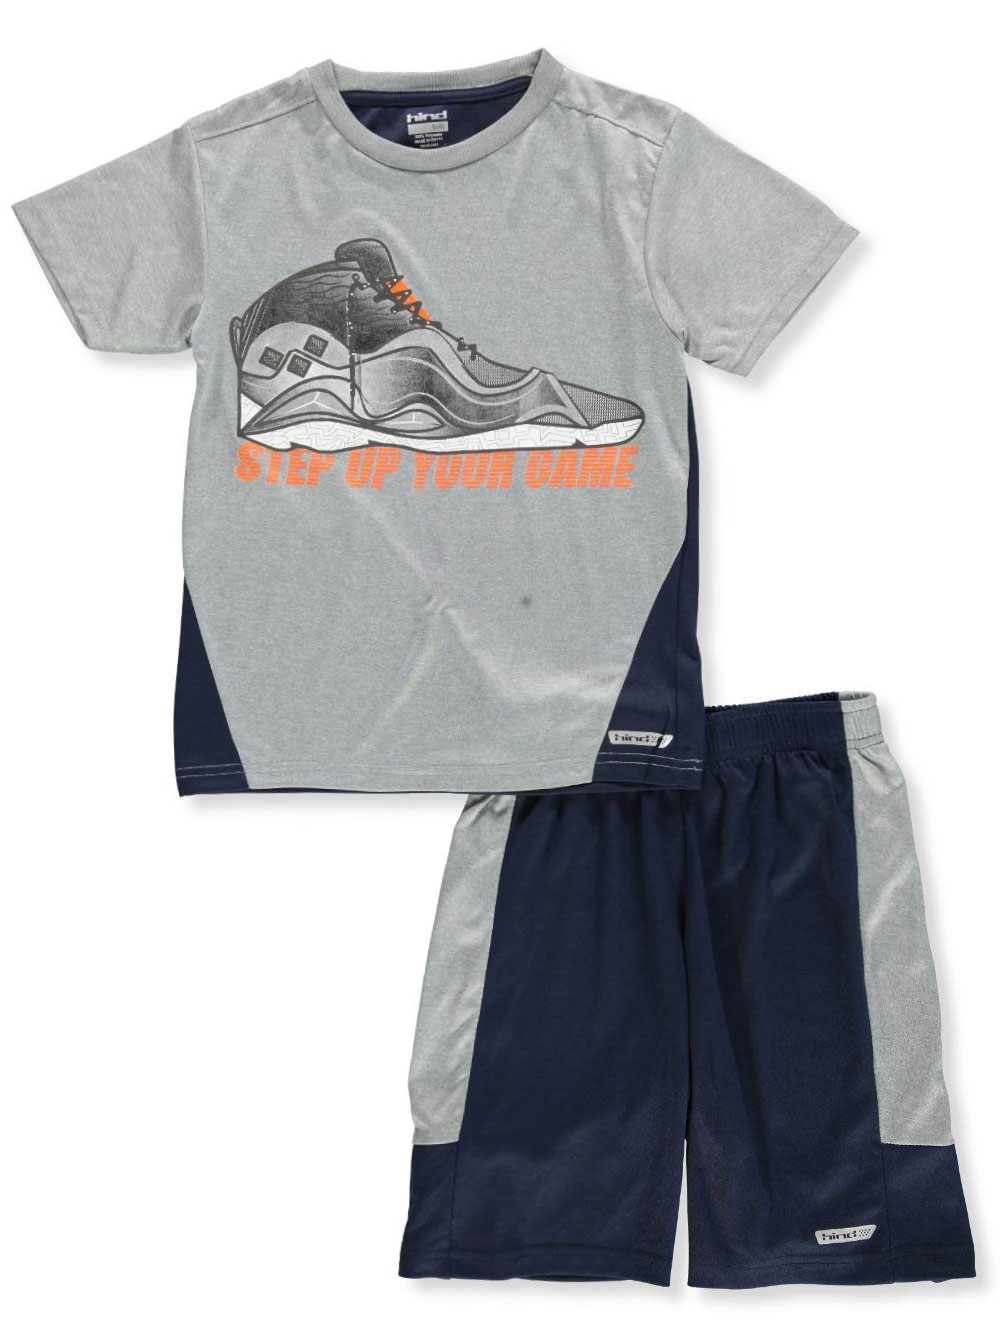 32c2e6290 Boys' 2-Piece Shorts Set Outfit by Hind in Gray/navy from Cookie's Kids